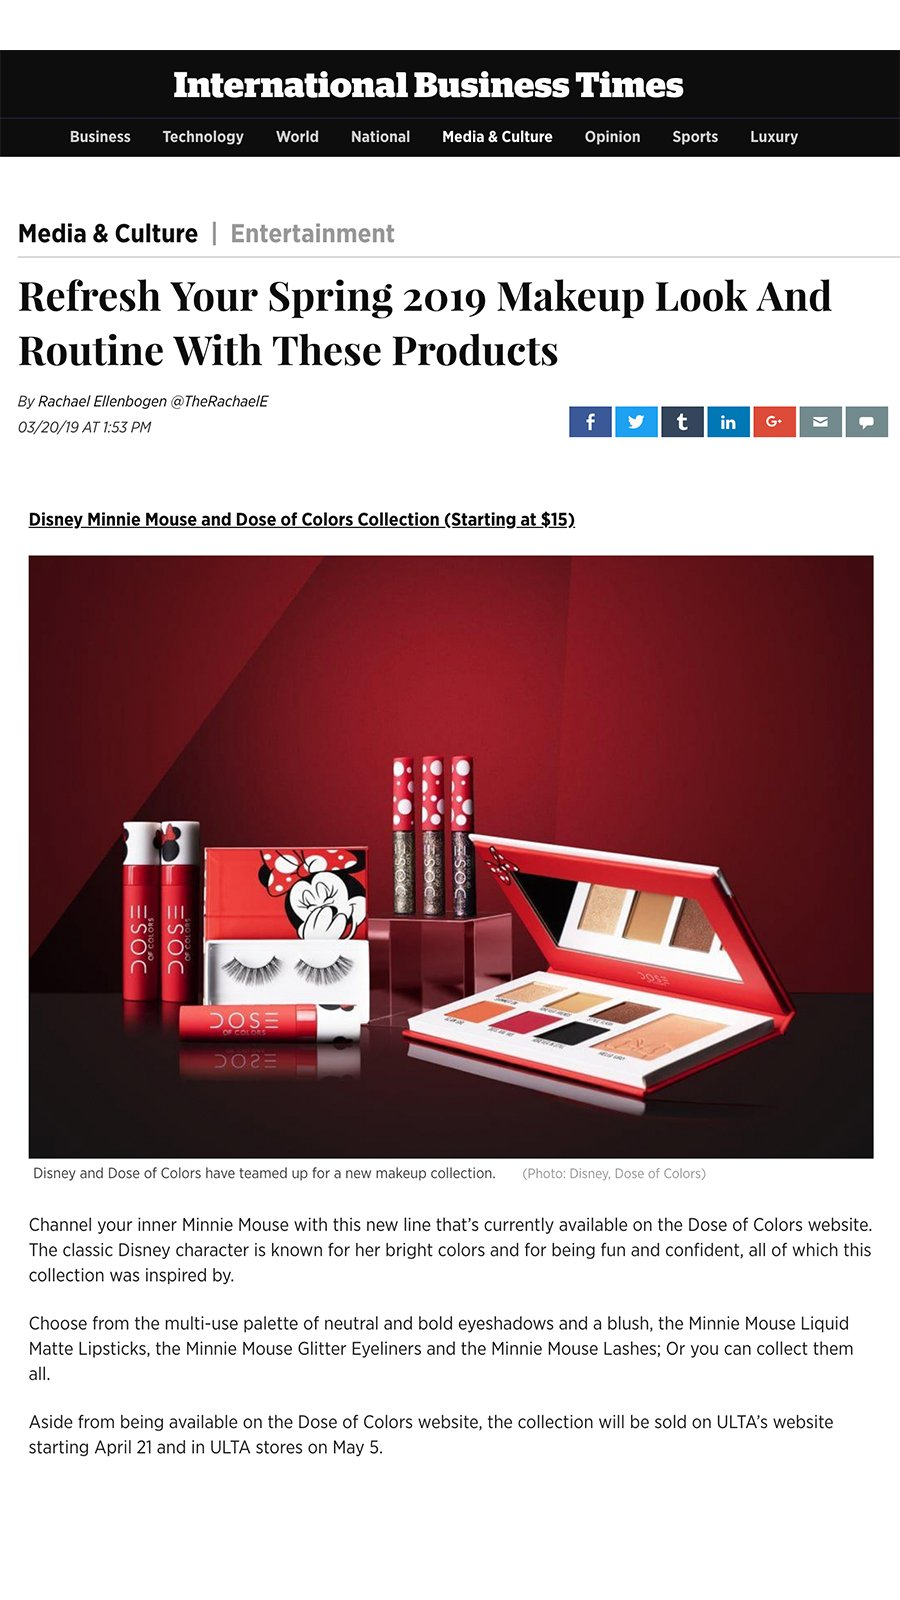 International Business Times - Minnie Mouse x Dose of Colors Collection